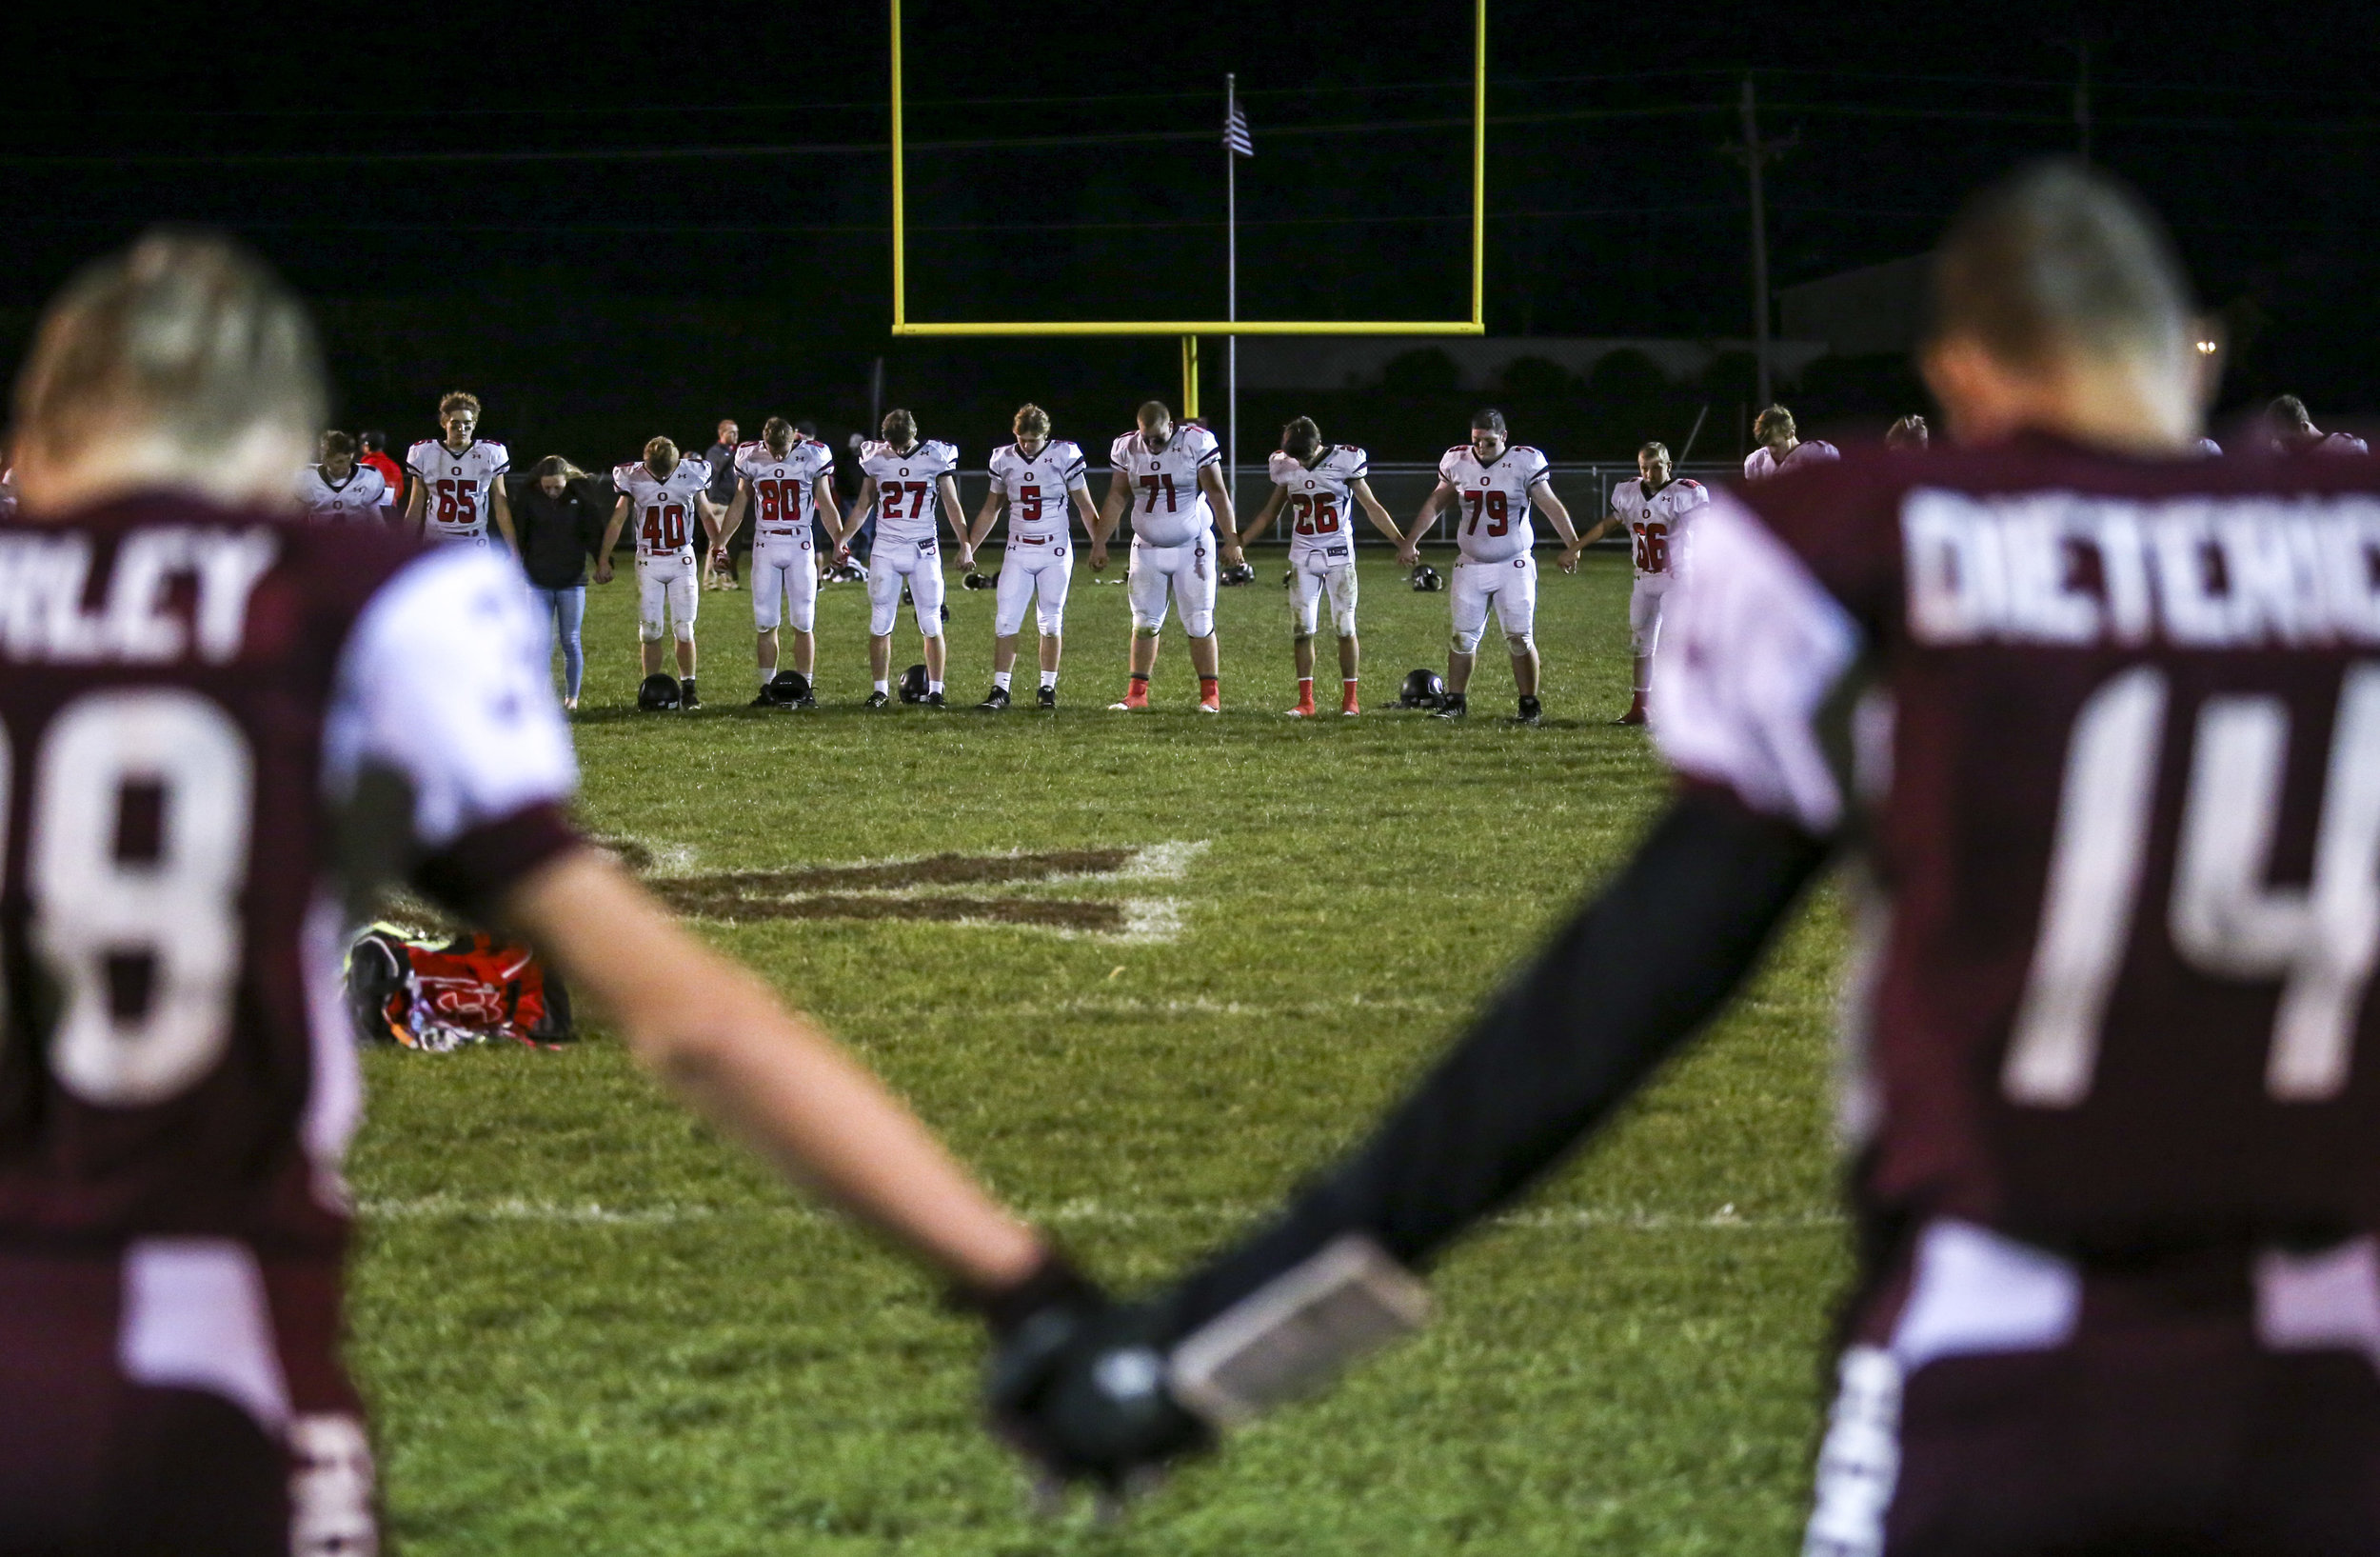 Rockridge players, cheerleaders and fans form a circle with Orion players to say a prayer after their game at Rockridge High School in Edginton, Friday, October 20, 2017. No. 6 Rockridge defeated No. 8 Orion. 20-17.